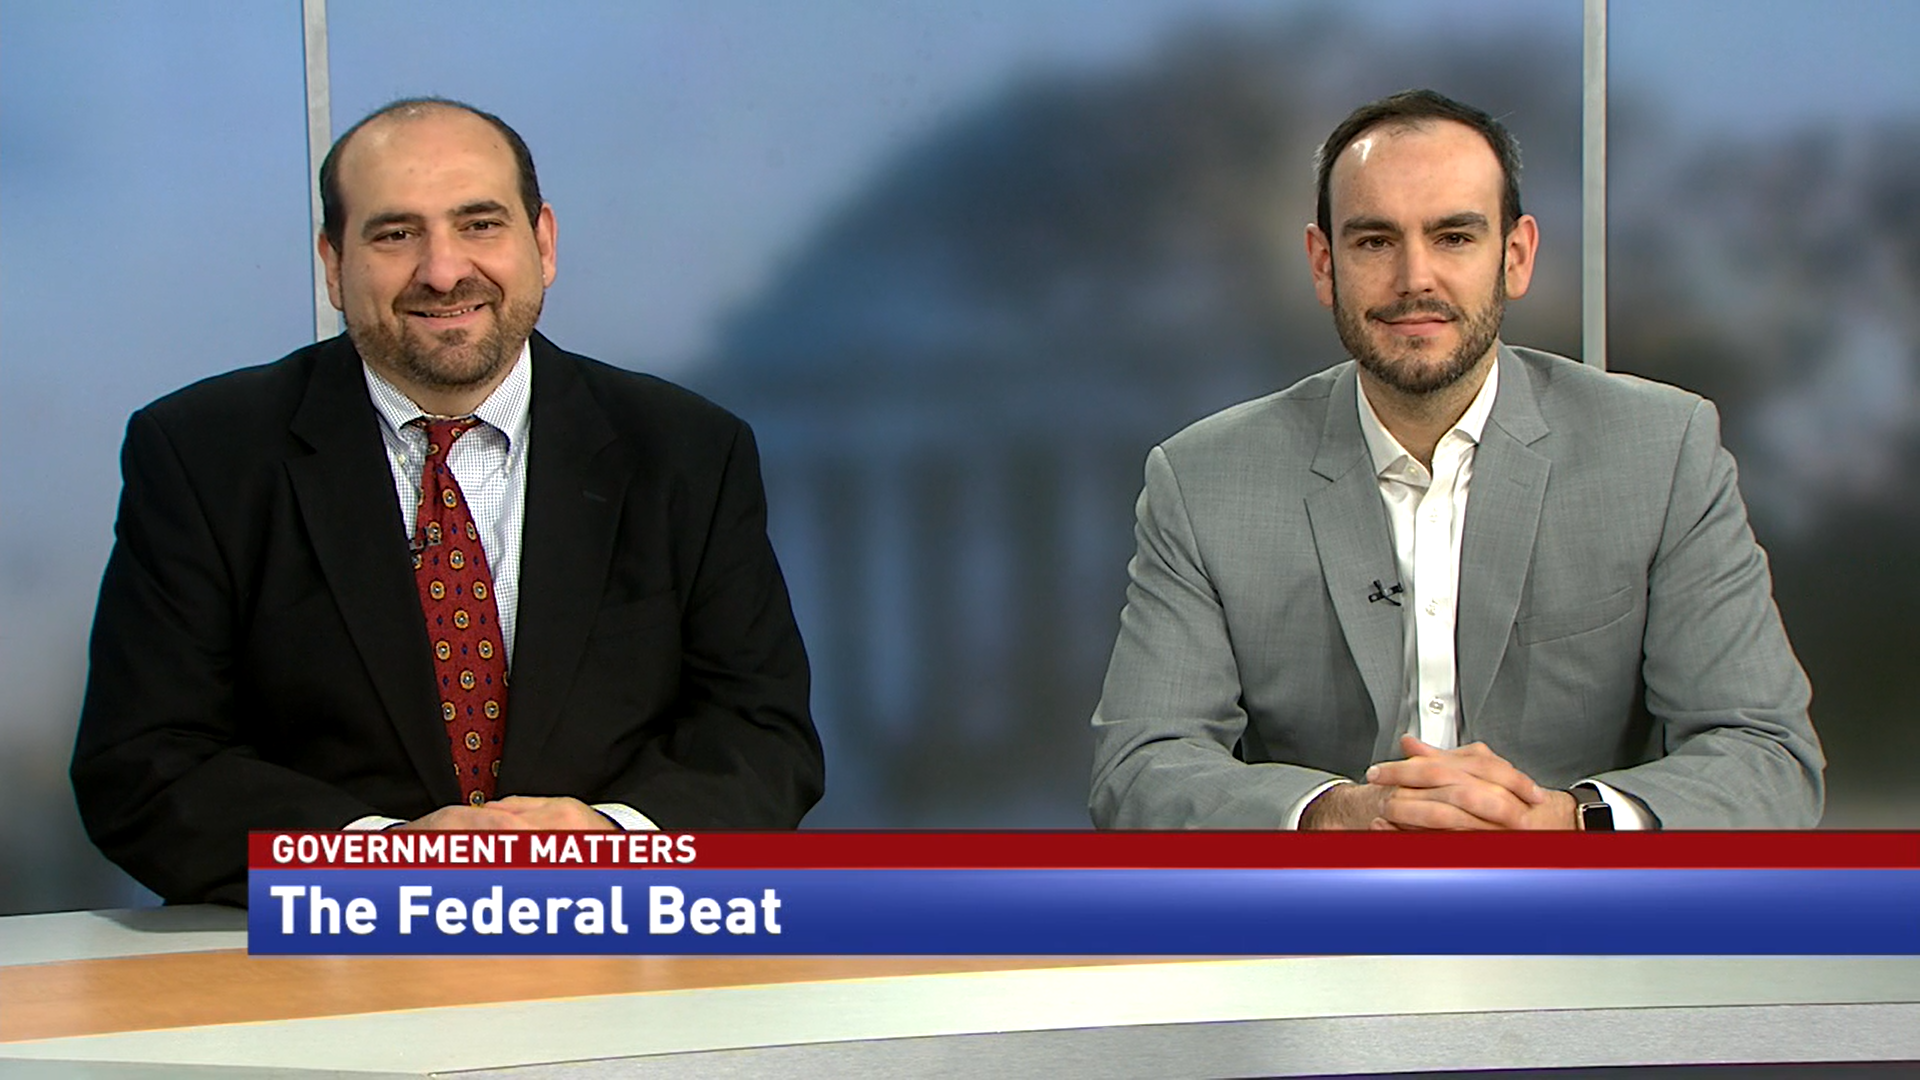 The Federal Beat- March 17, 2019